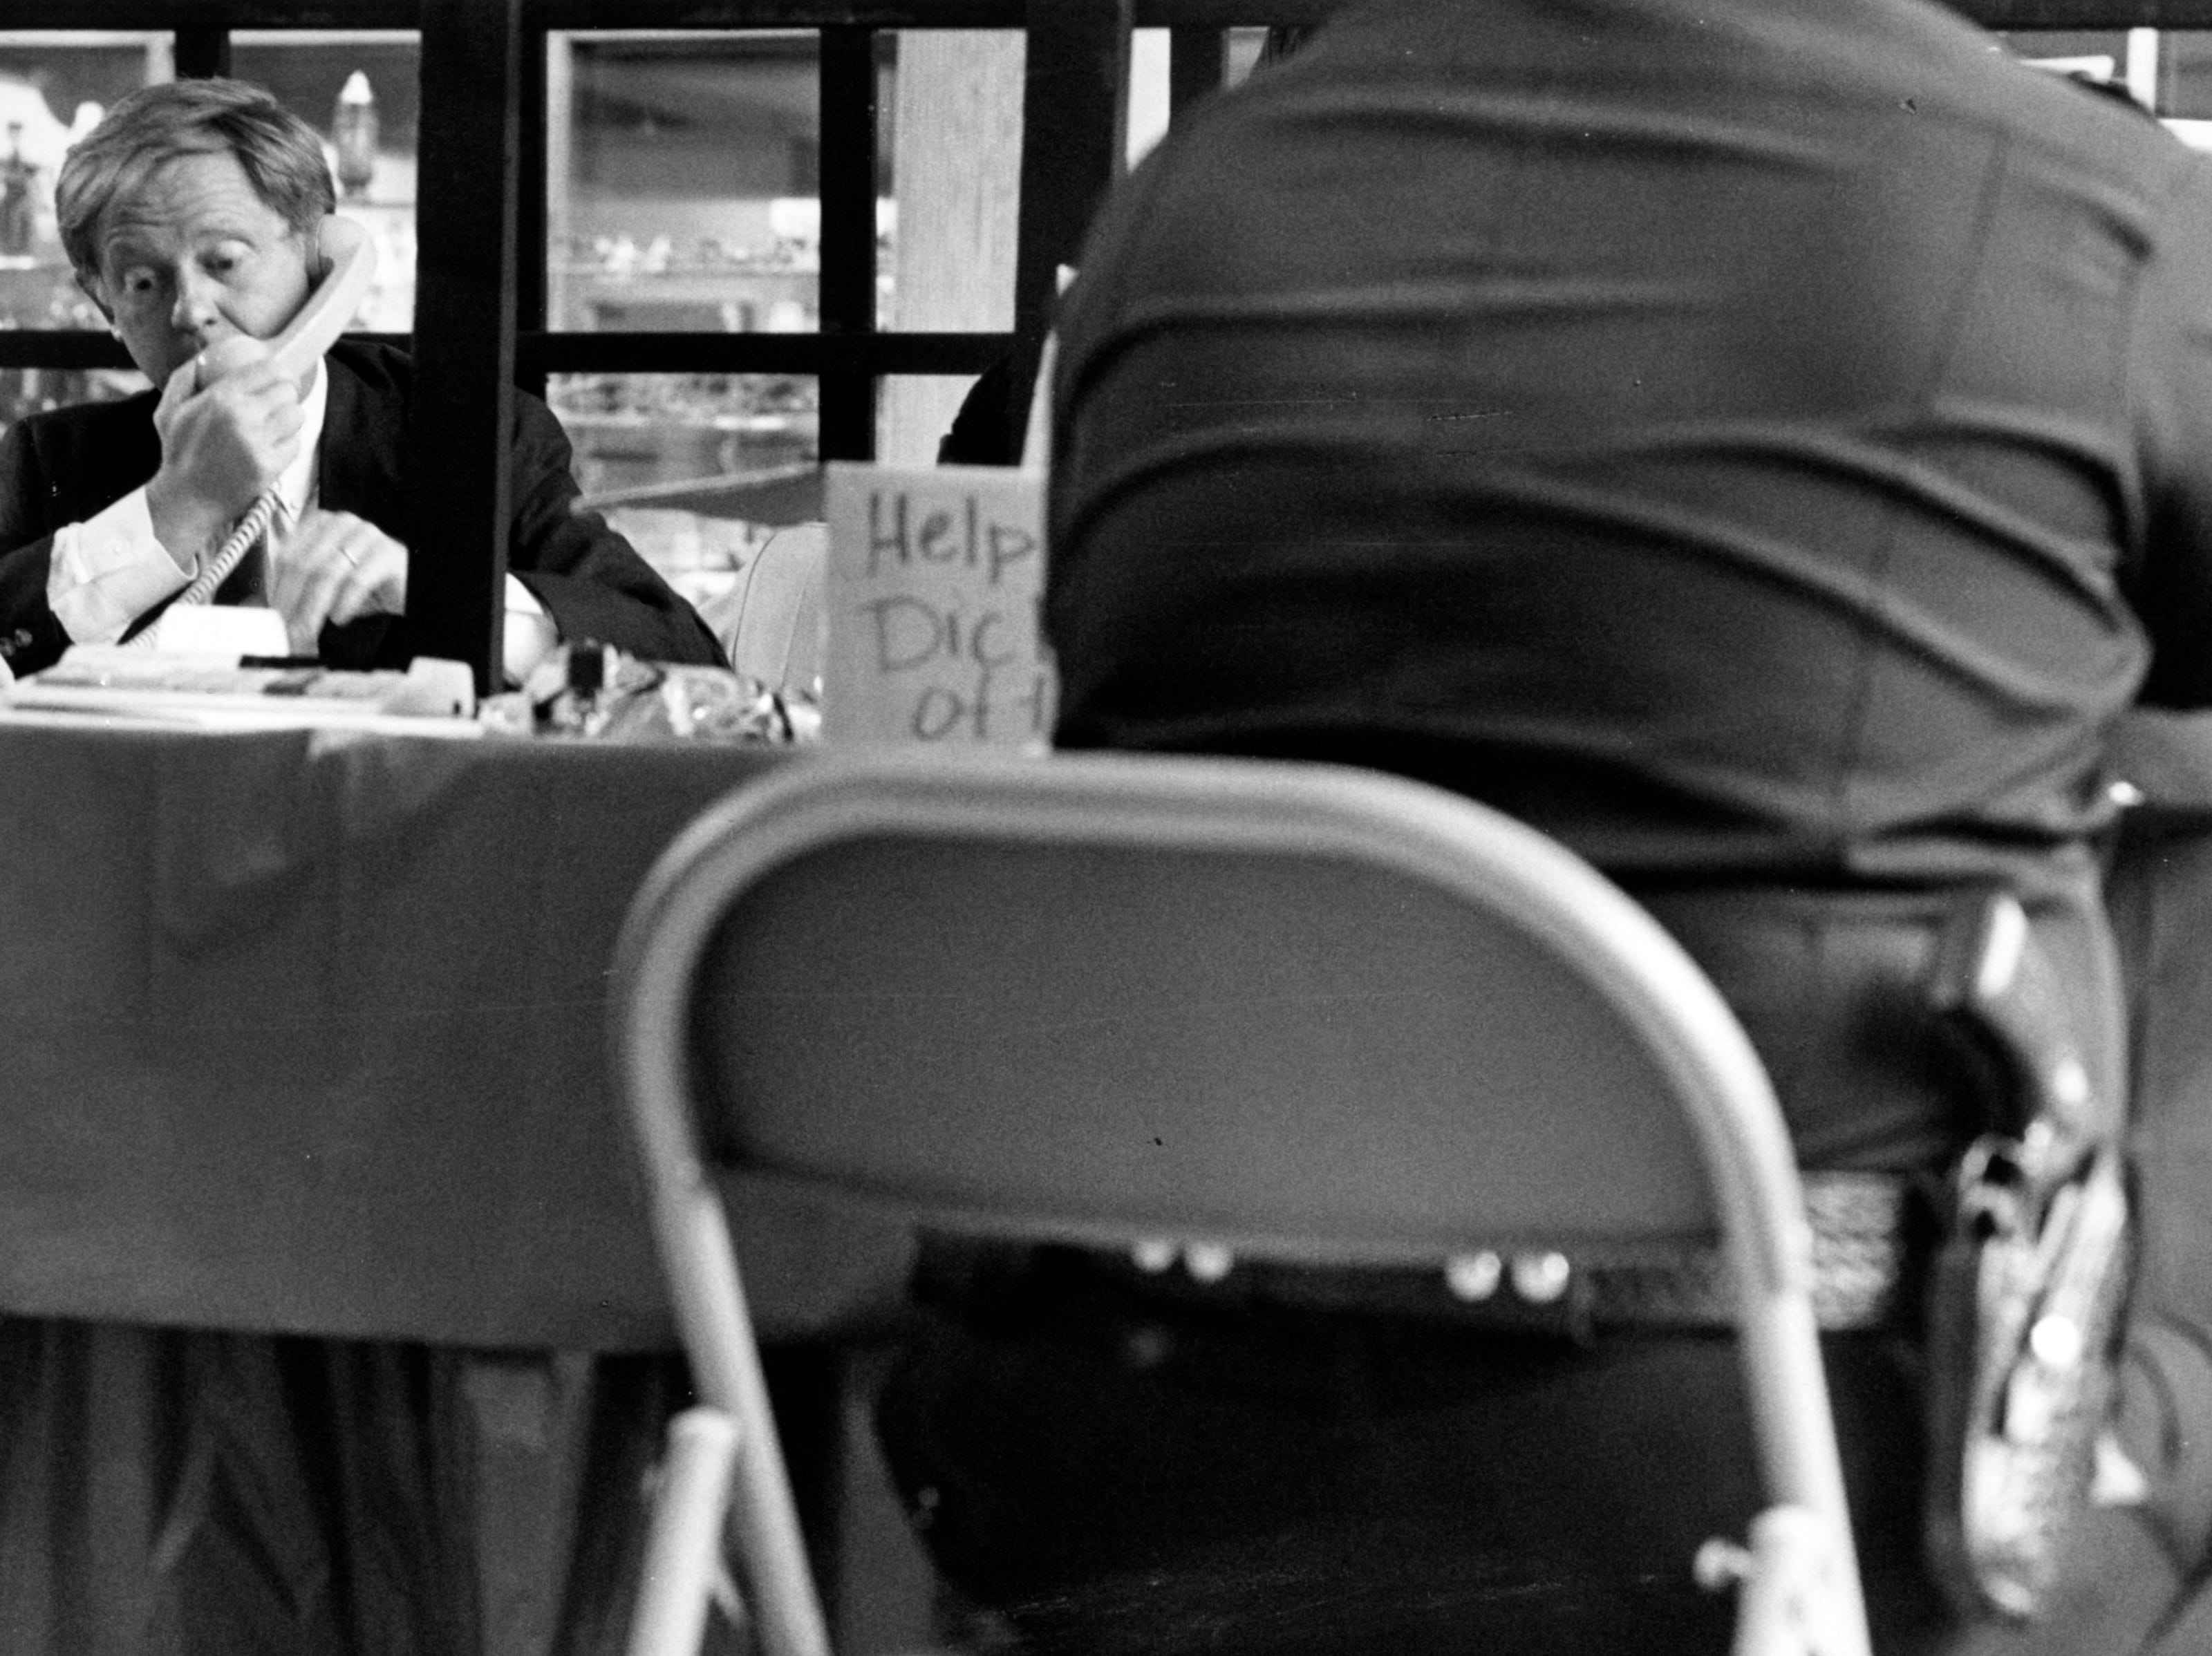 Mayor Victor Ashe makes phone calls to help raise $1500 for his bail from inside the jail at East Town Mall during a fundraiser to raise money for cancer in 1988.